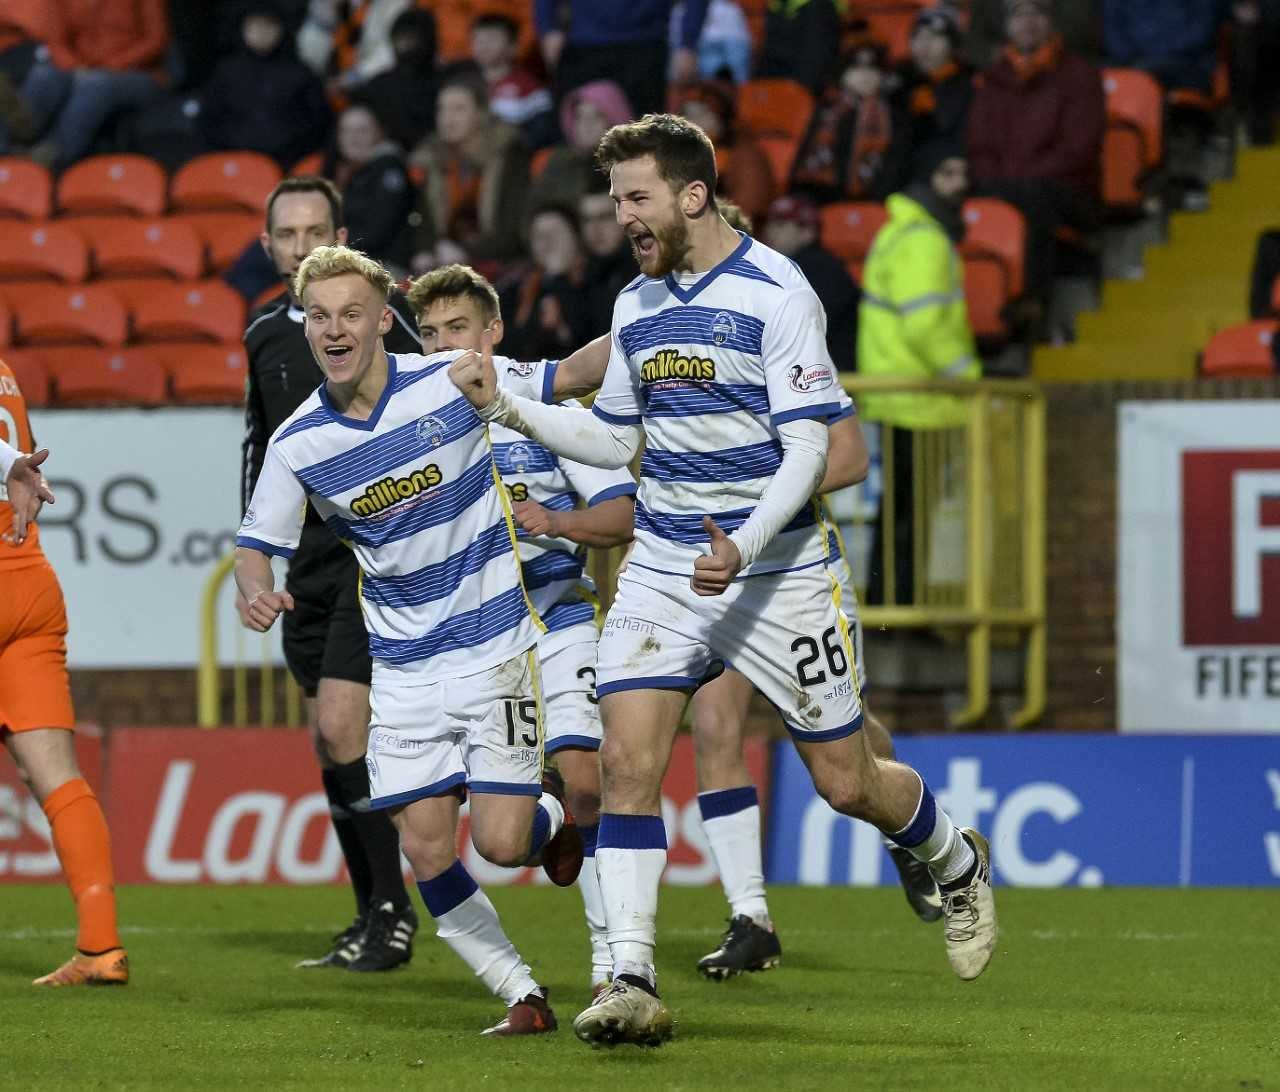 Morton boss thrilled for youngster Tiffoney